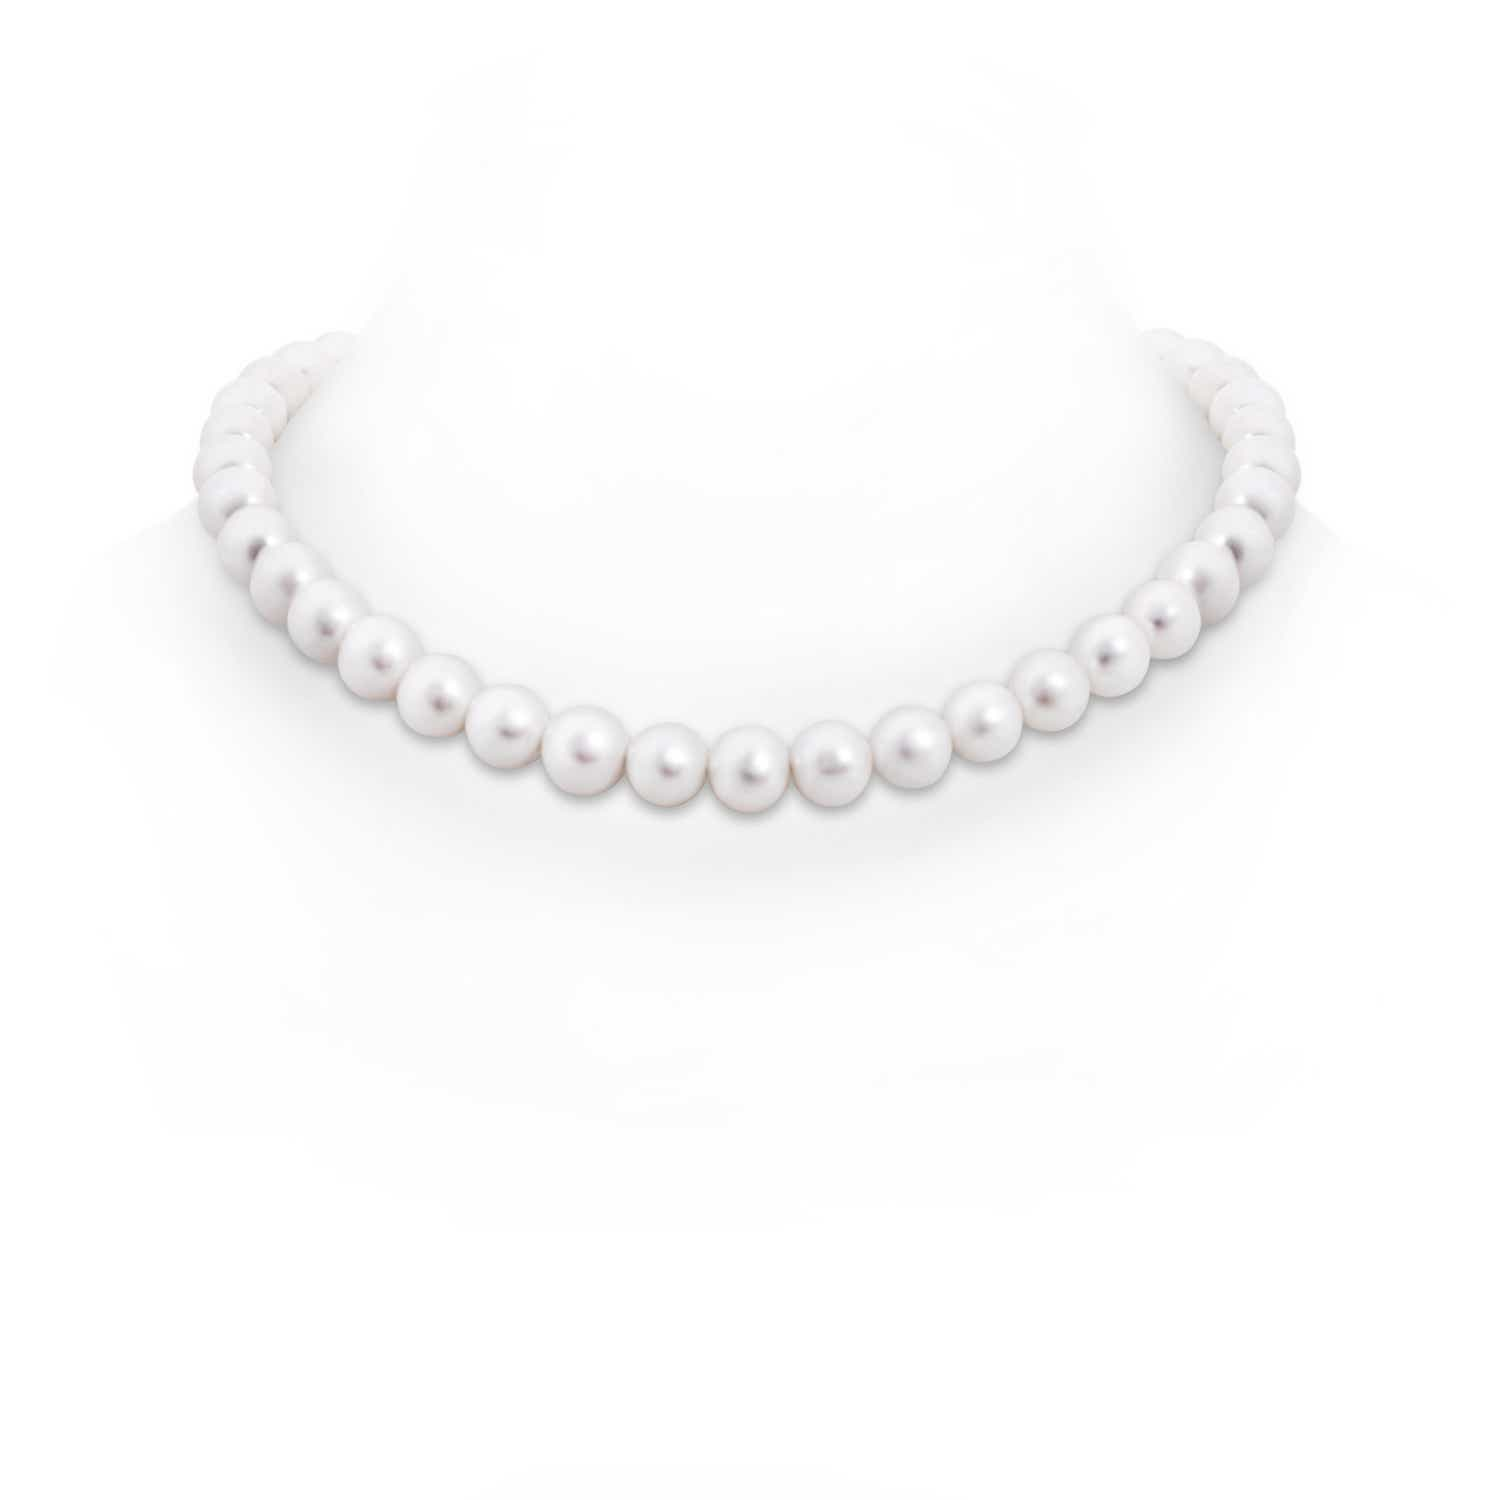 16 Freshwater Cultured Pearl Choker Length Single Strand